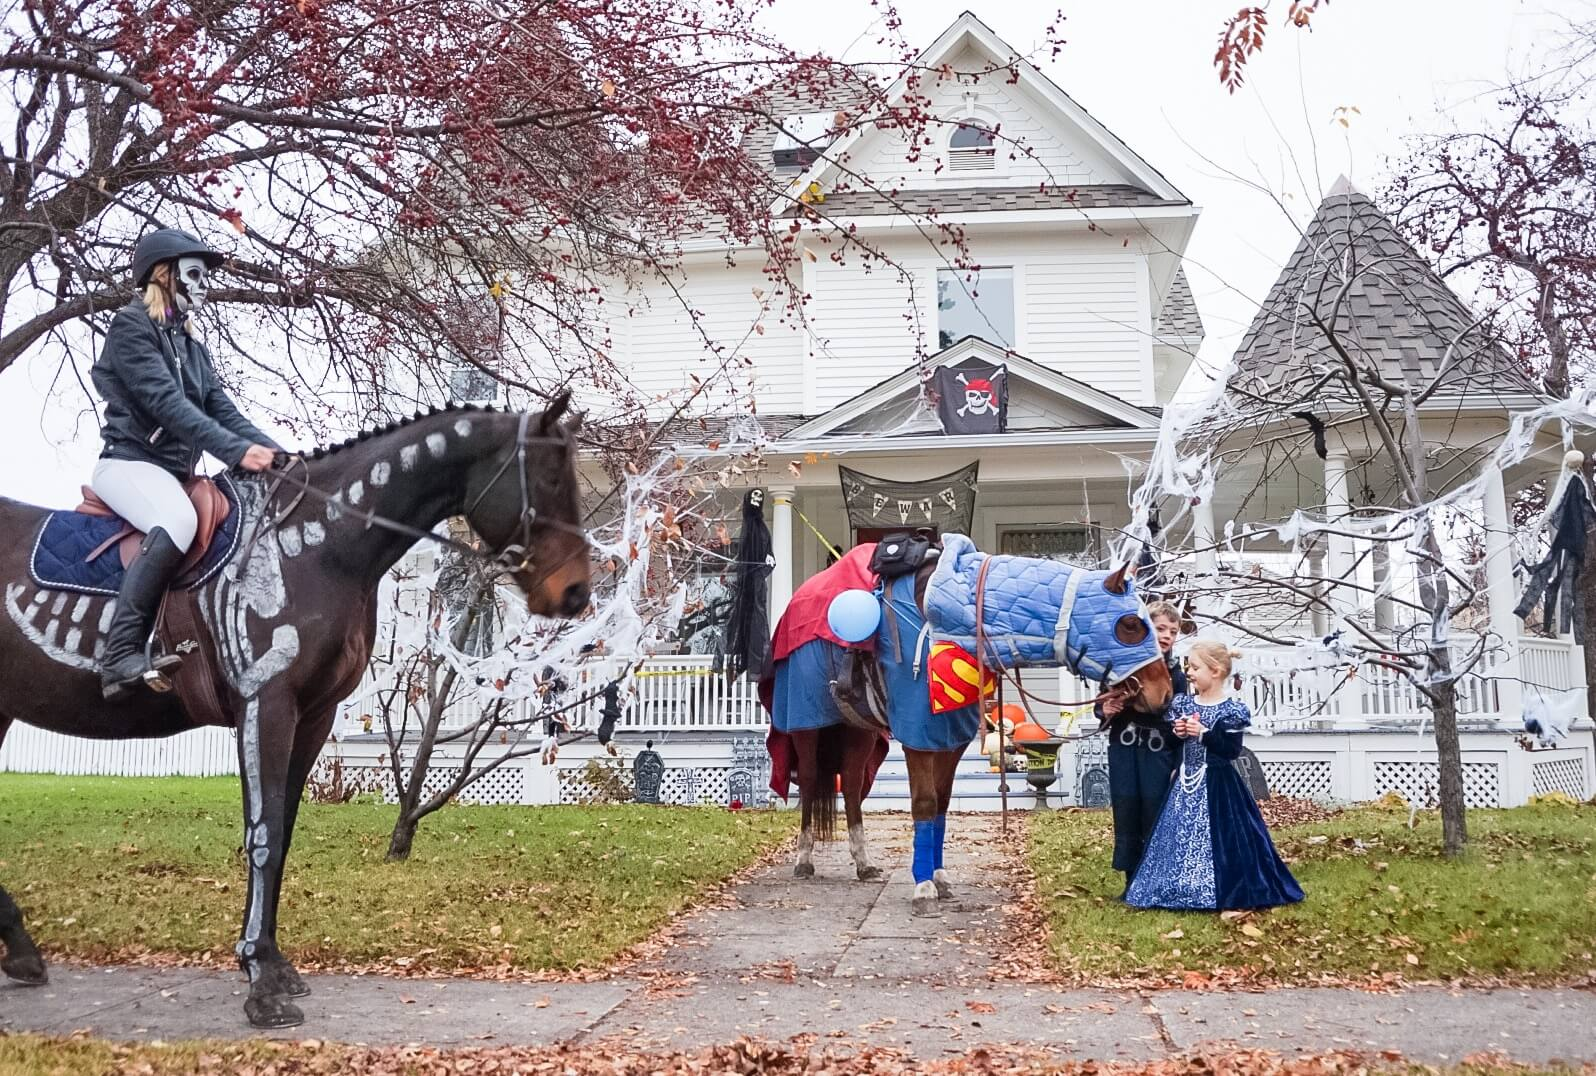 horses dressed up for halloween